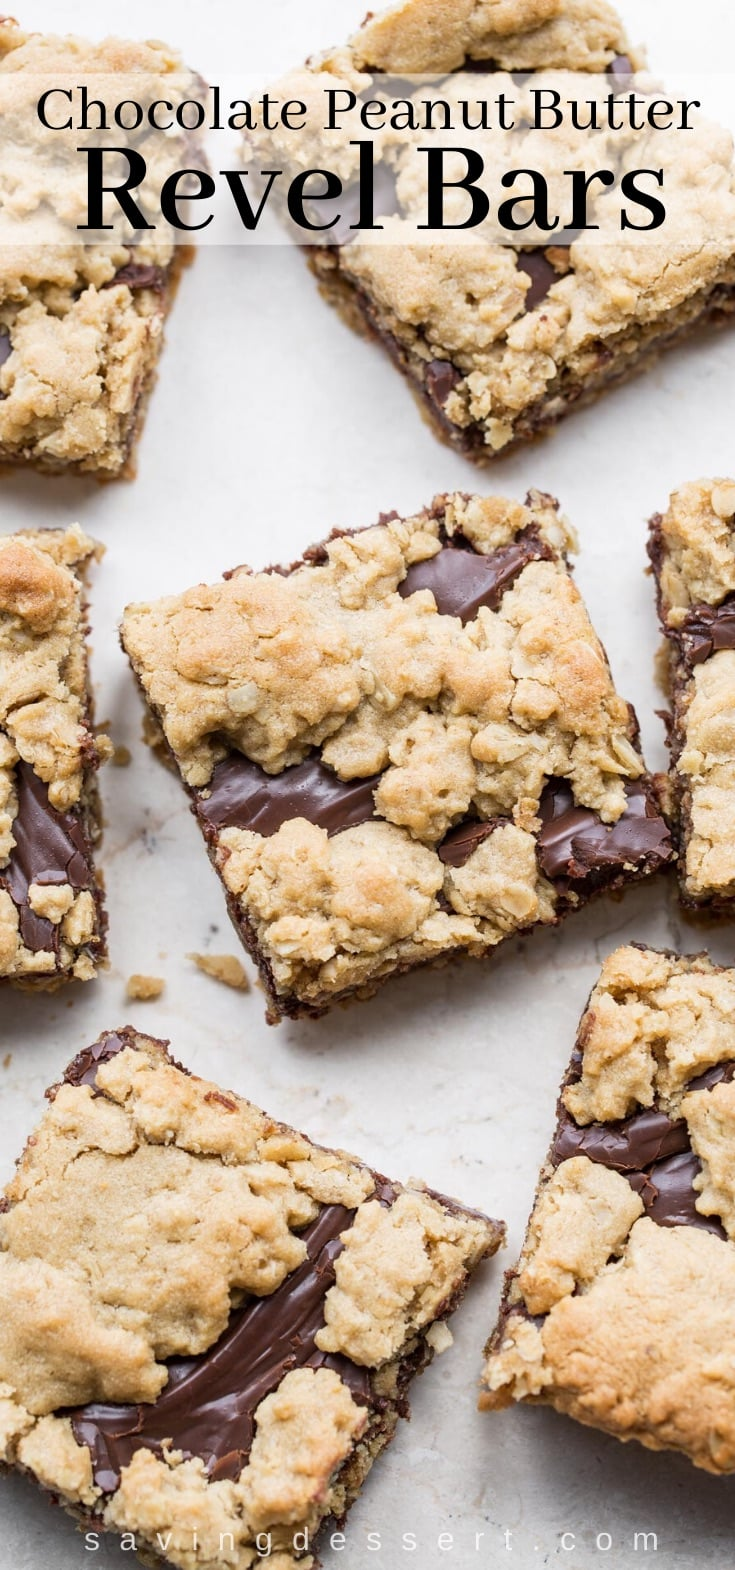 Revel Bars on a platter